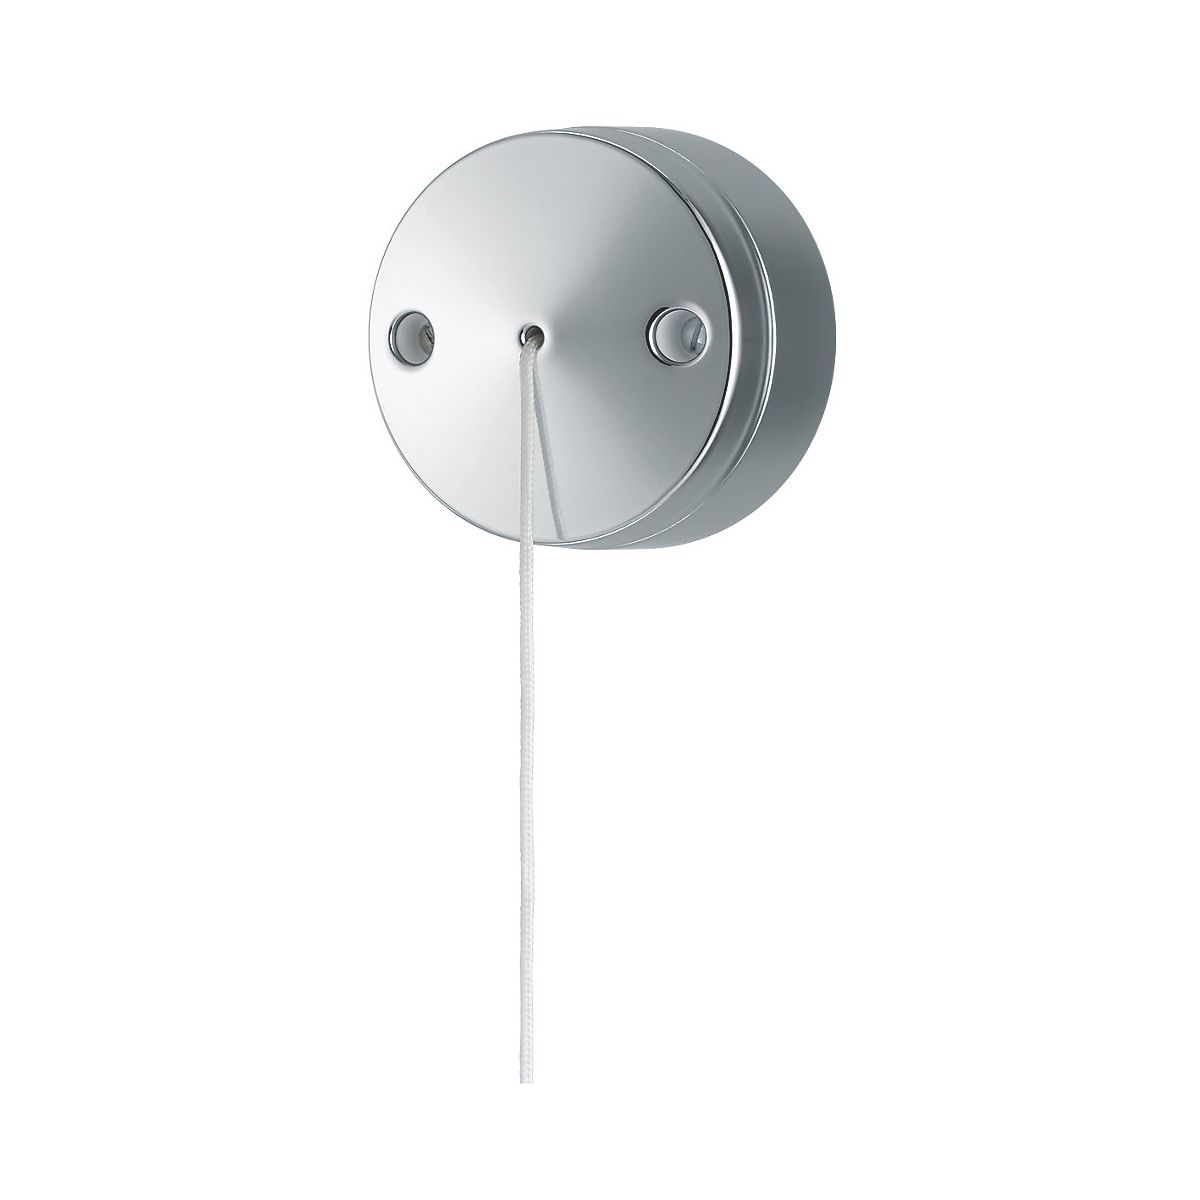 LAP Polished Chrome 6A 2-Way Pull Cord Switch